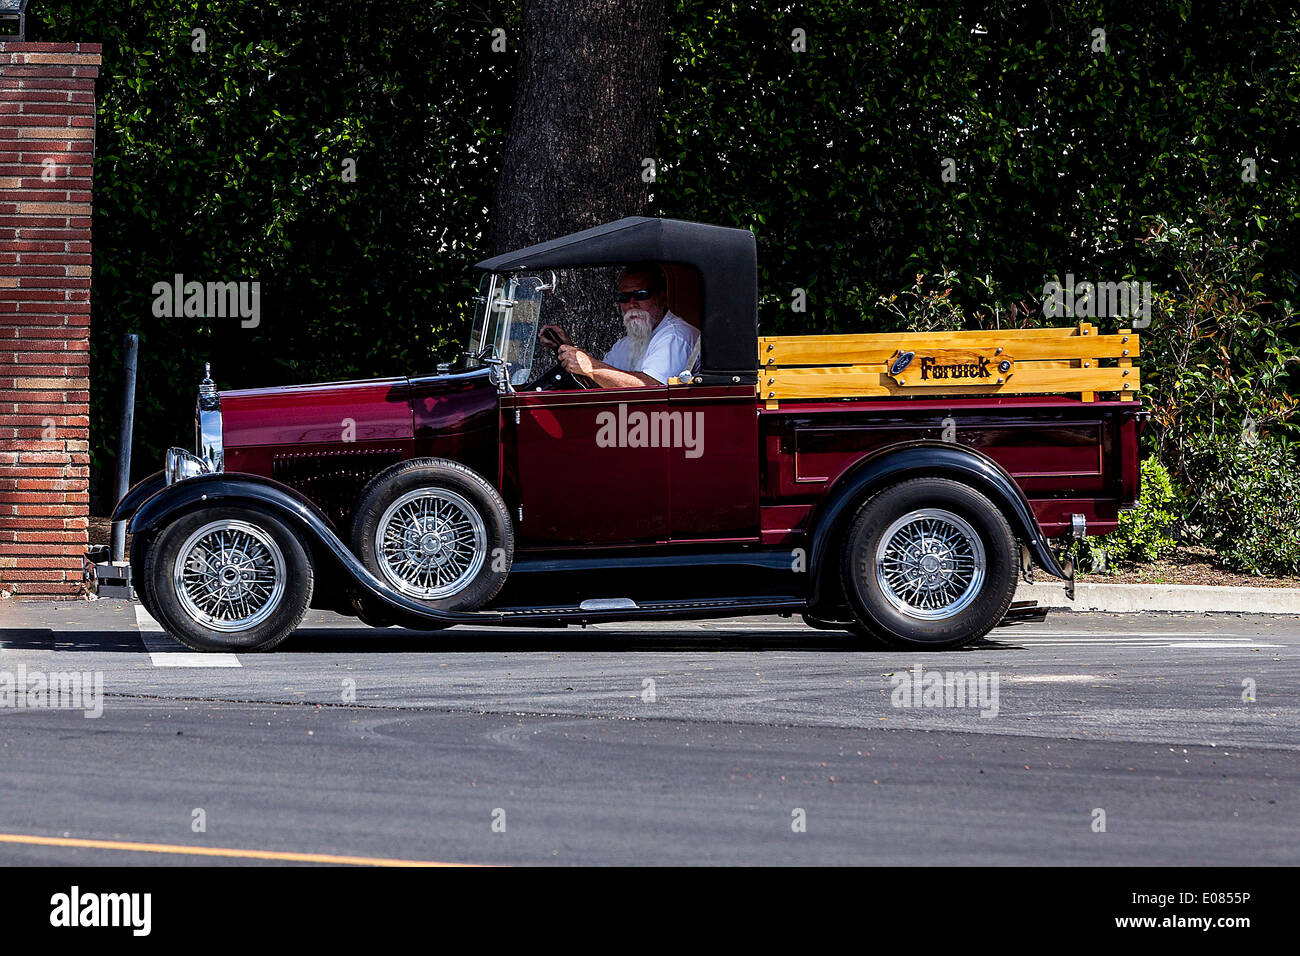 A 1932 Ford pickup truck Hot Rod Stock Photo: 69021170 - Alamy